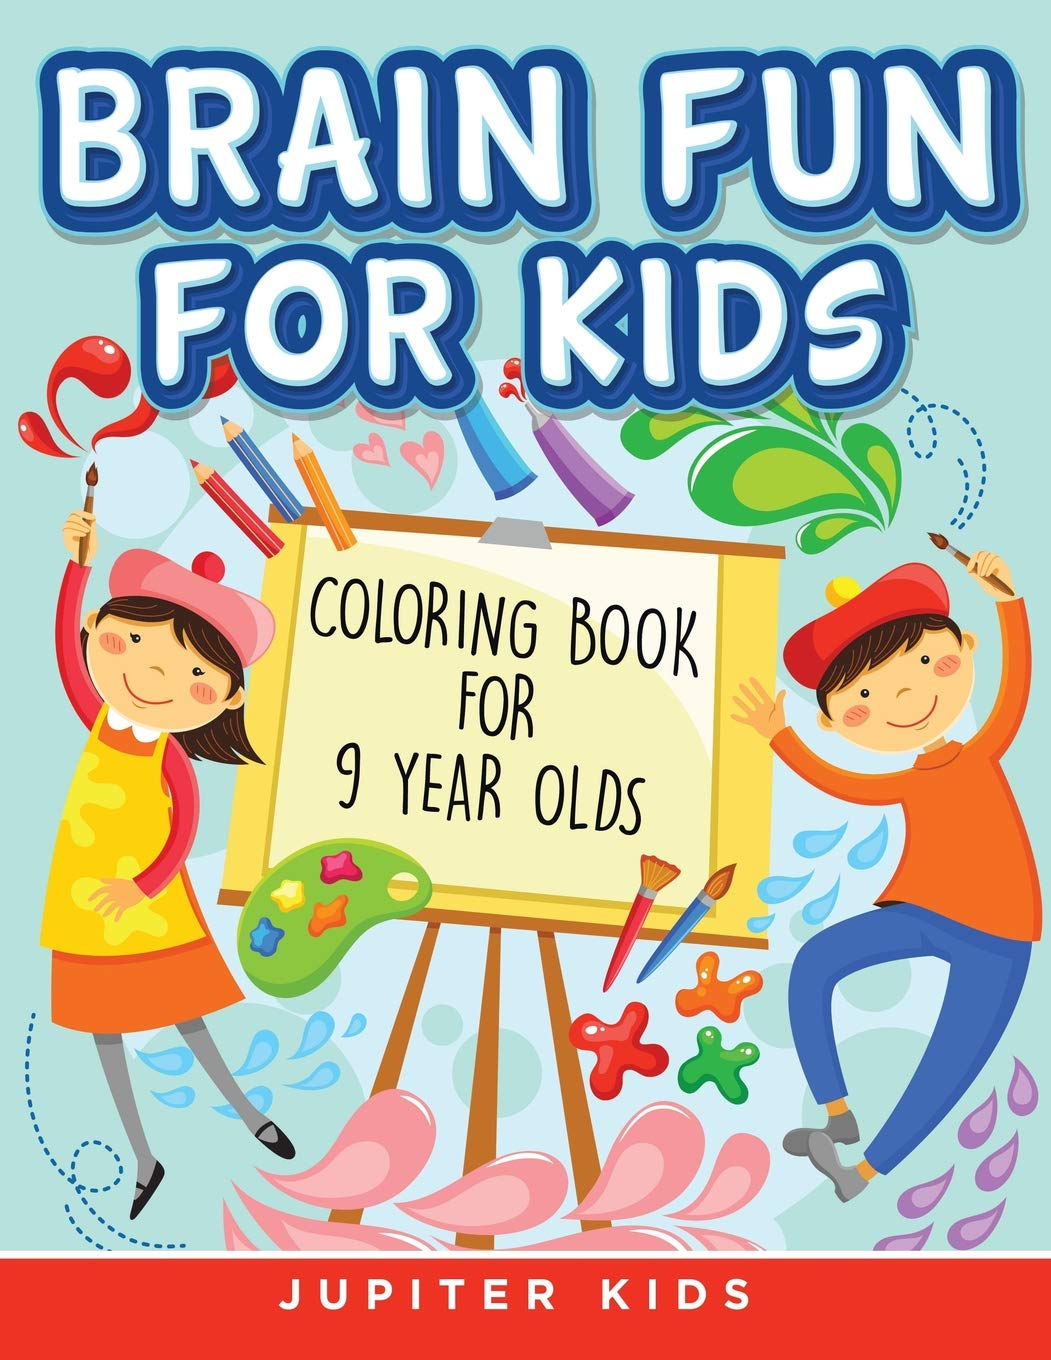 Brain Fun For Kids  Coloring Book For 9 Year Olds  Jupiter Kids